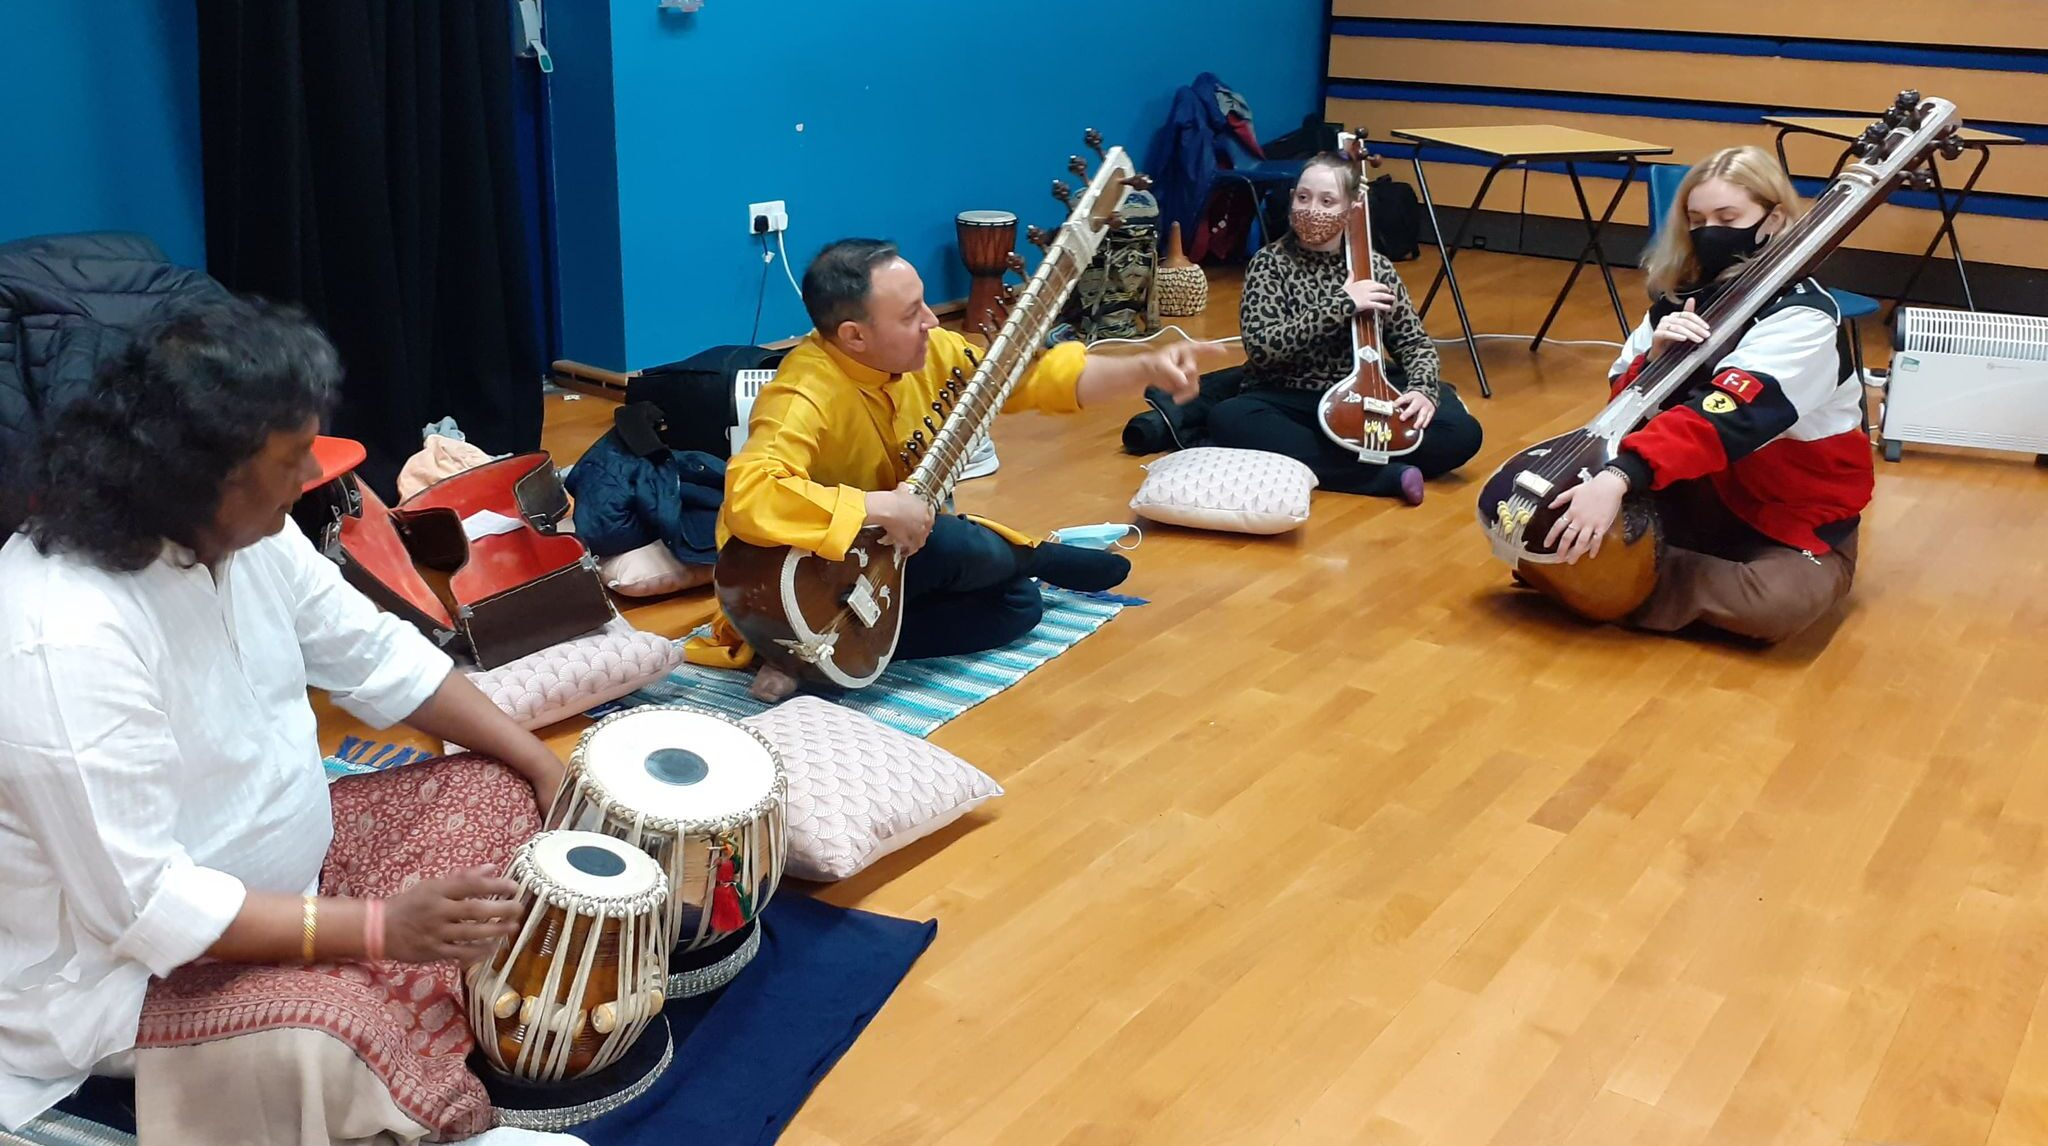 4 people play Indian instruments in a workshop